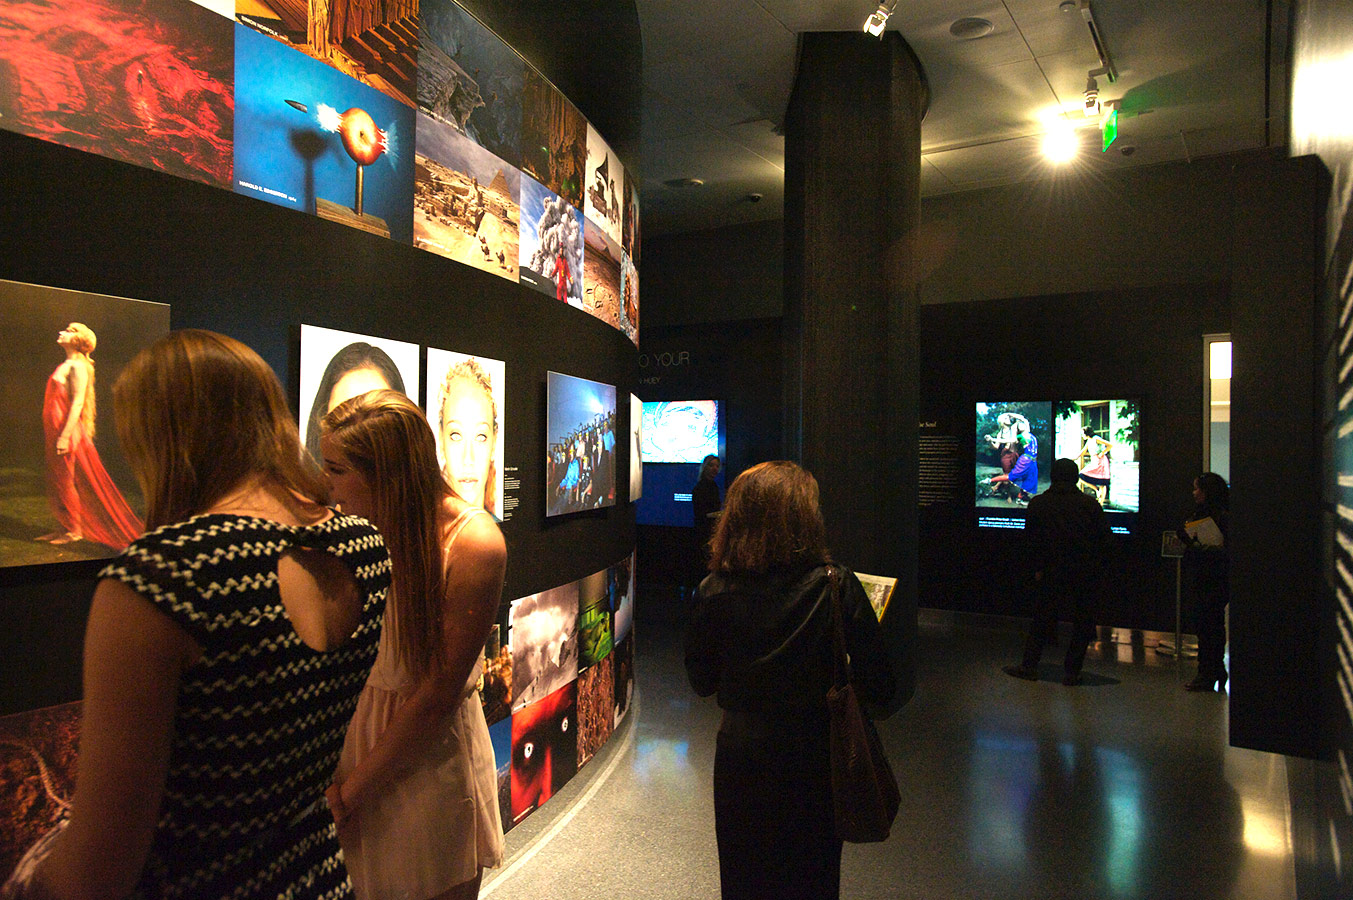 During the recent NAT GEO exhibition, visitors were surrounded by photographs and video produced over decades in the field.